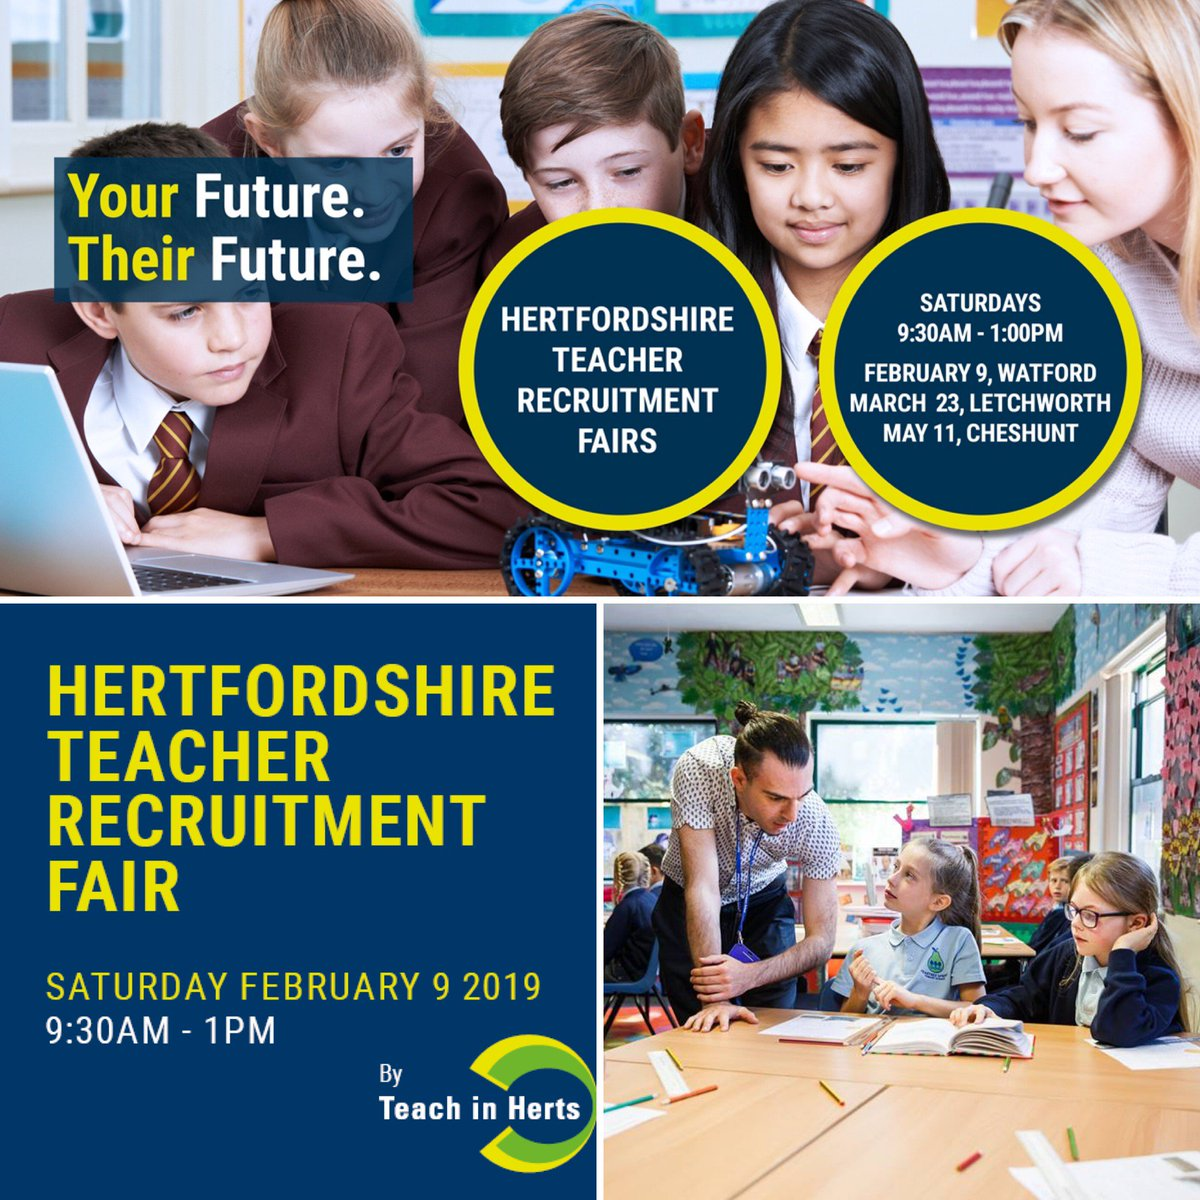 Are you a qualified teacher looking for a new job? ✅ Do you want to meet schools with vacancies face to face? ✅ Then come along to our #Hertfordshire Teacher Recruitment event on Sat 9th Feb in #Watford  Find out more & register your attendance today at: https://t.co/24ttJQKzVo https://t.co/4wIHYKin1n